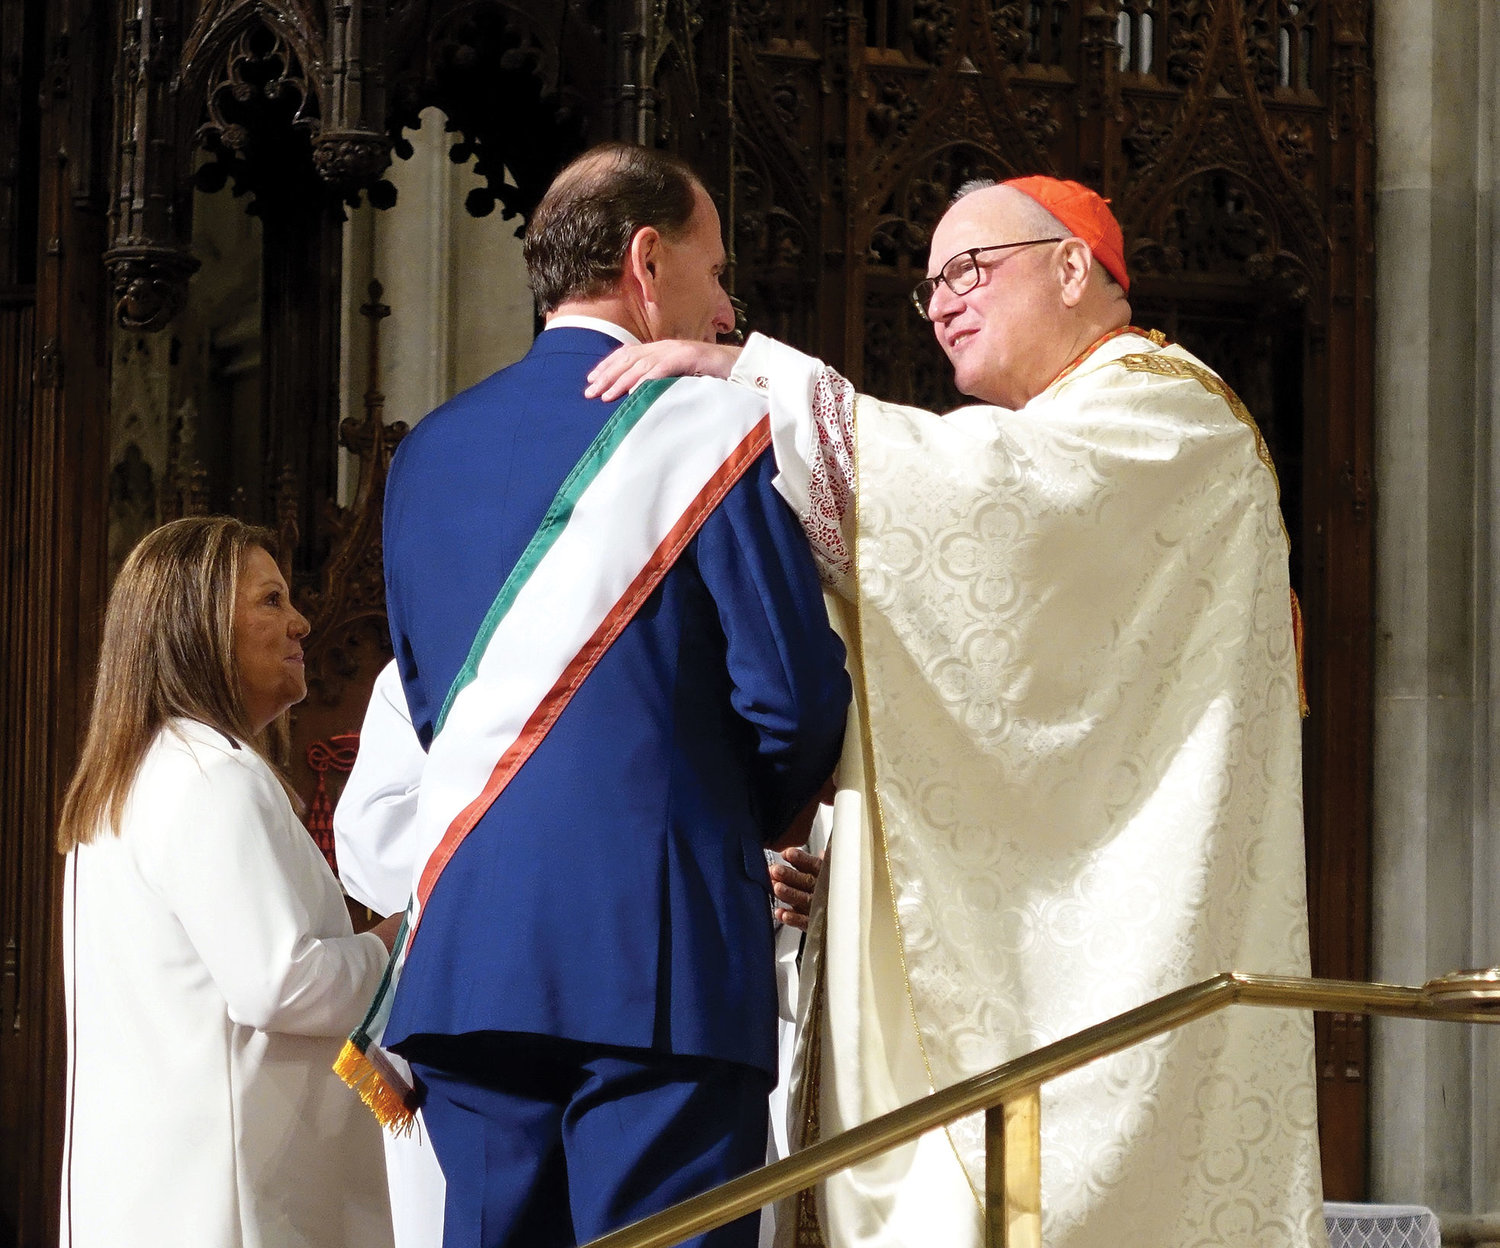 Cardinal Dolan greets Grand Marshal Guy Chiarello, president of First Data Corp., at the 41st annual Columbus Day Mass at St. Patrick's Cathedral.